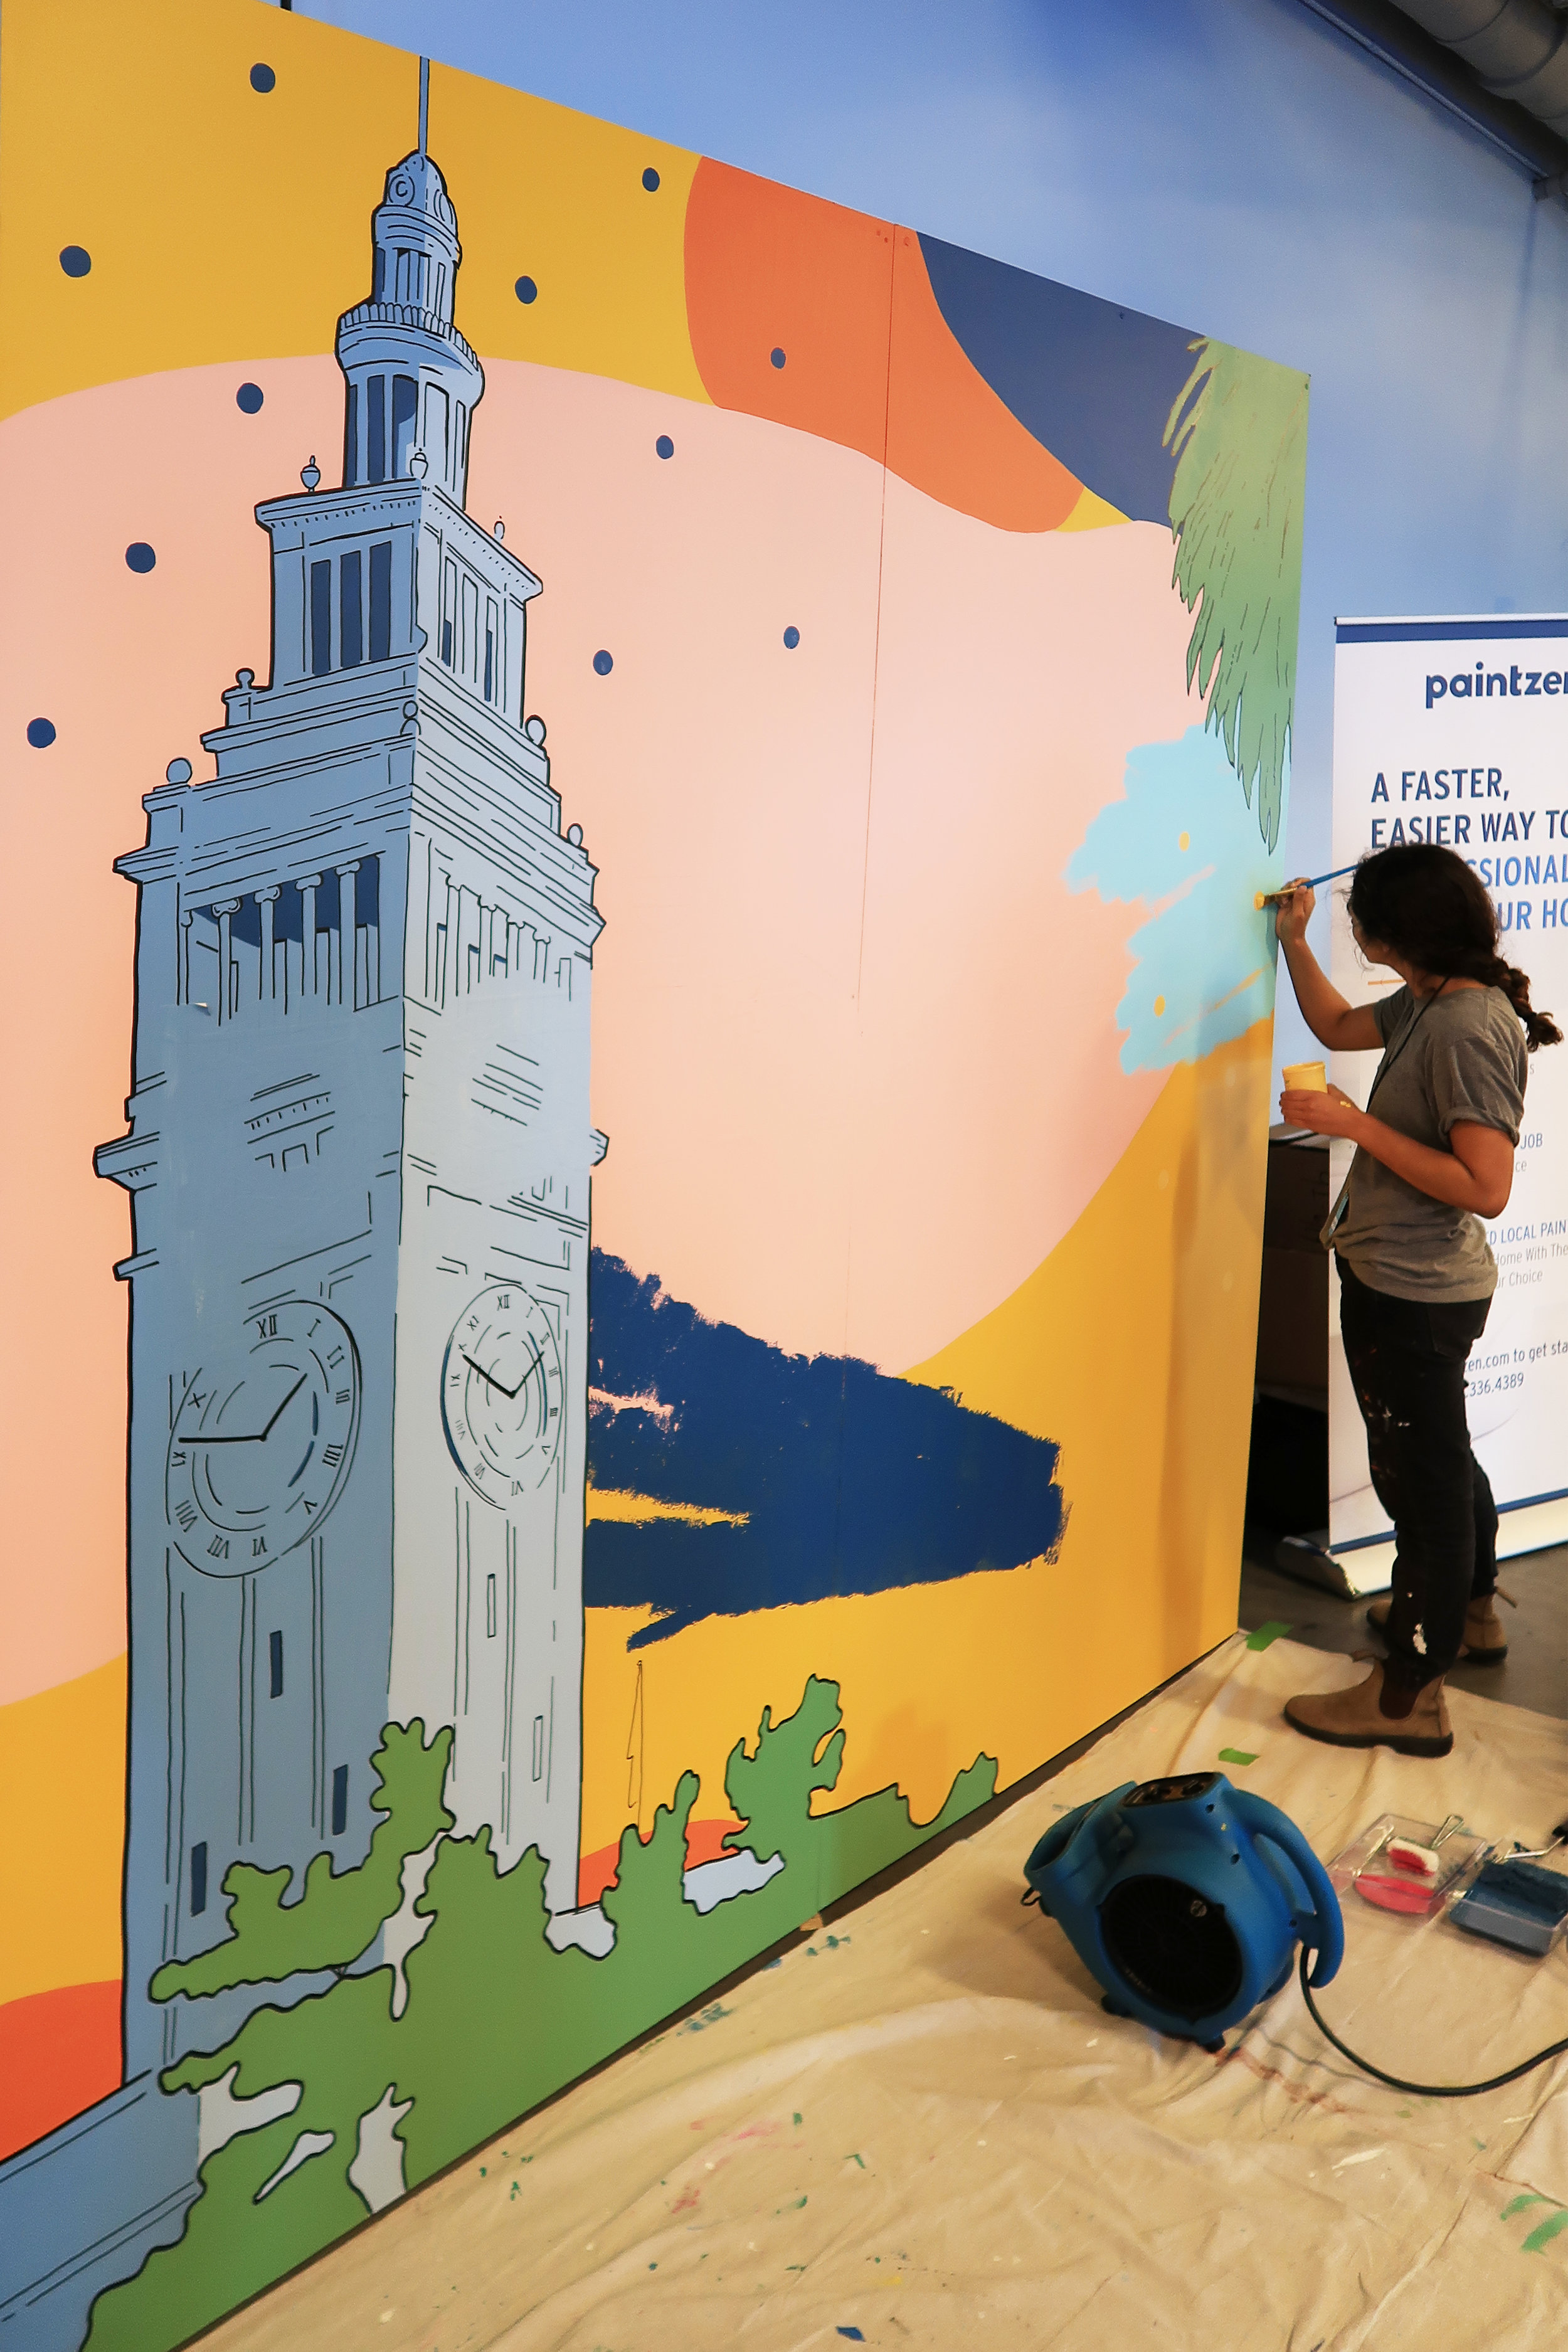 Event-live-painting-san-francisco-paintzen-wall-and-wall-mural-company_004.jpg